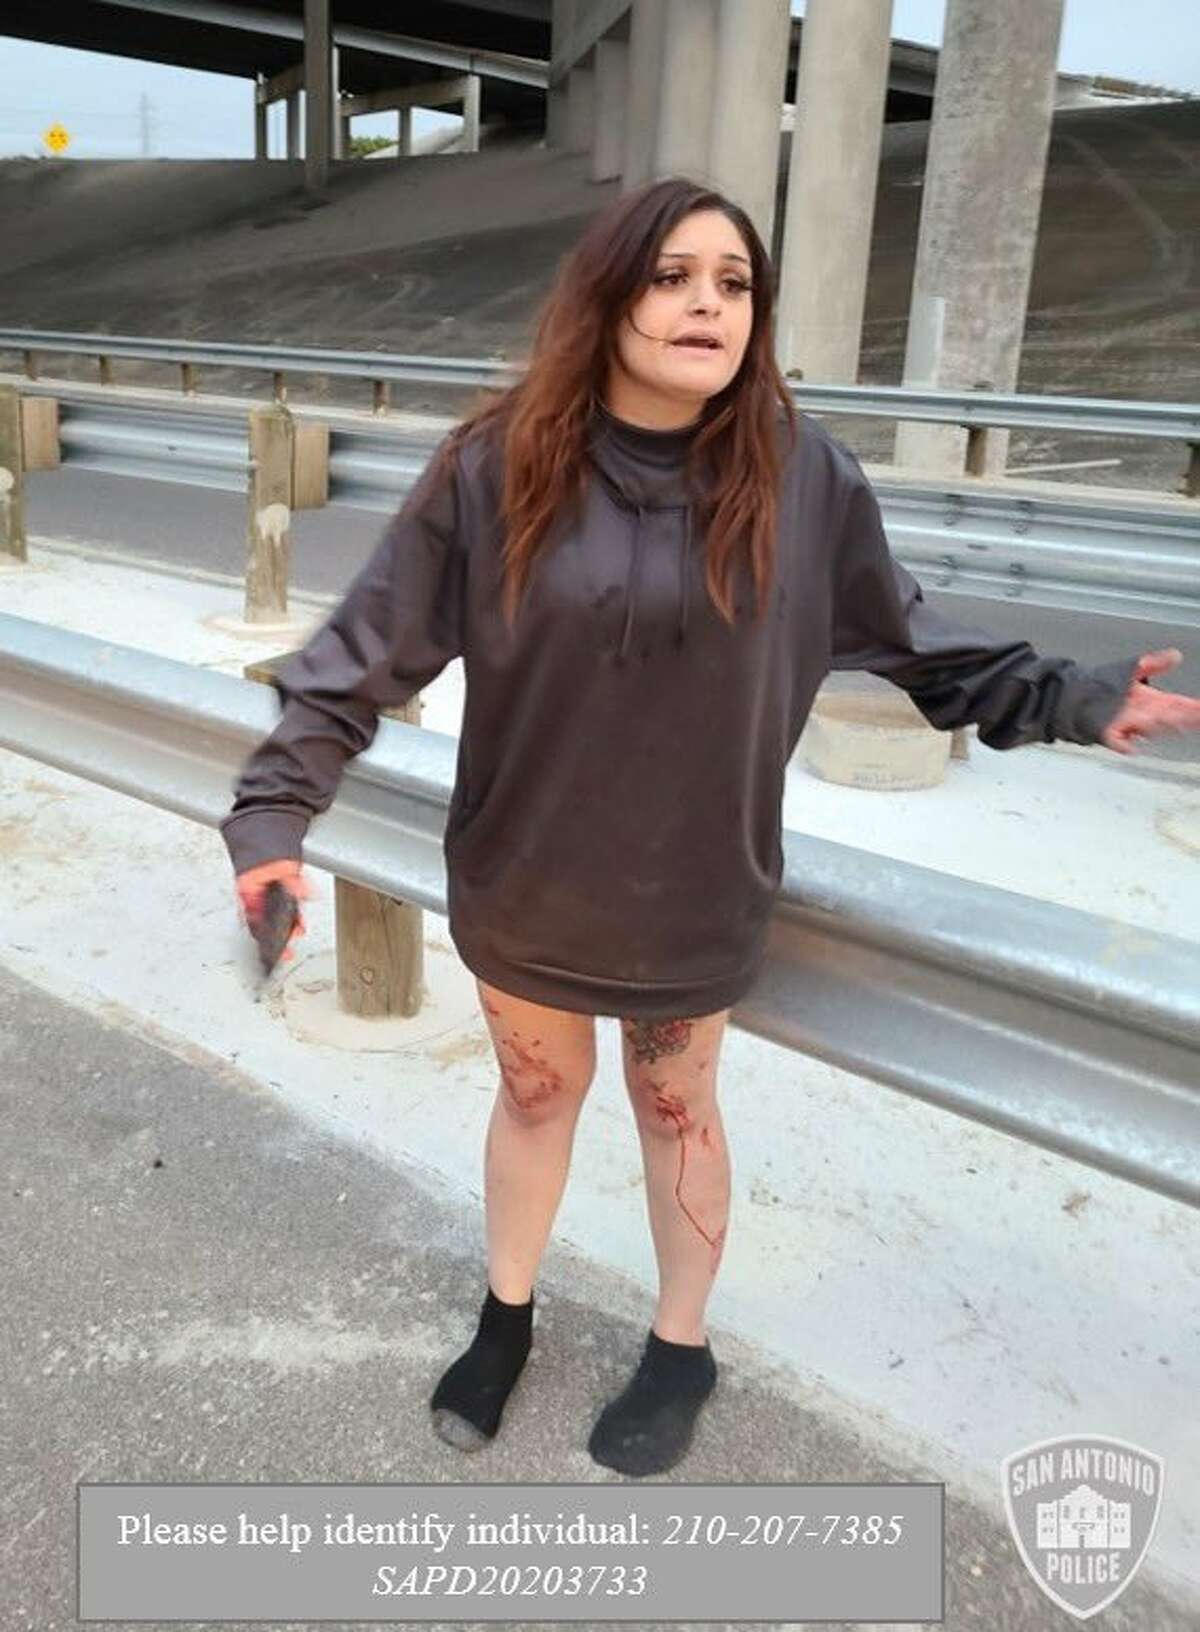 San Antonio police are asking the public to help identify a woman in connection with a fatal accident on the East Side Saturday morning. The woman they are searching for is in the photo.